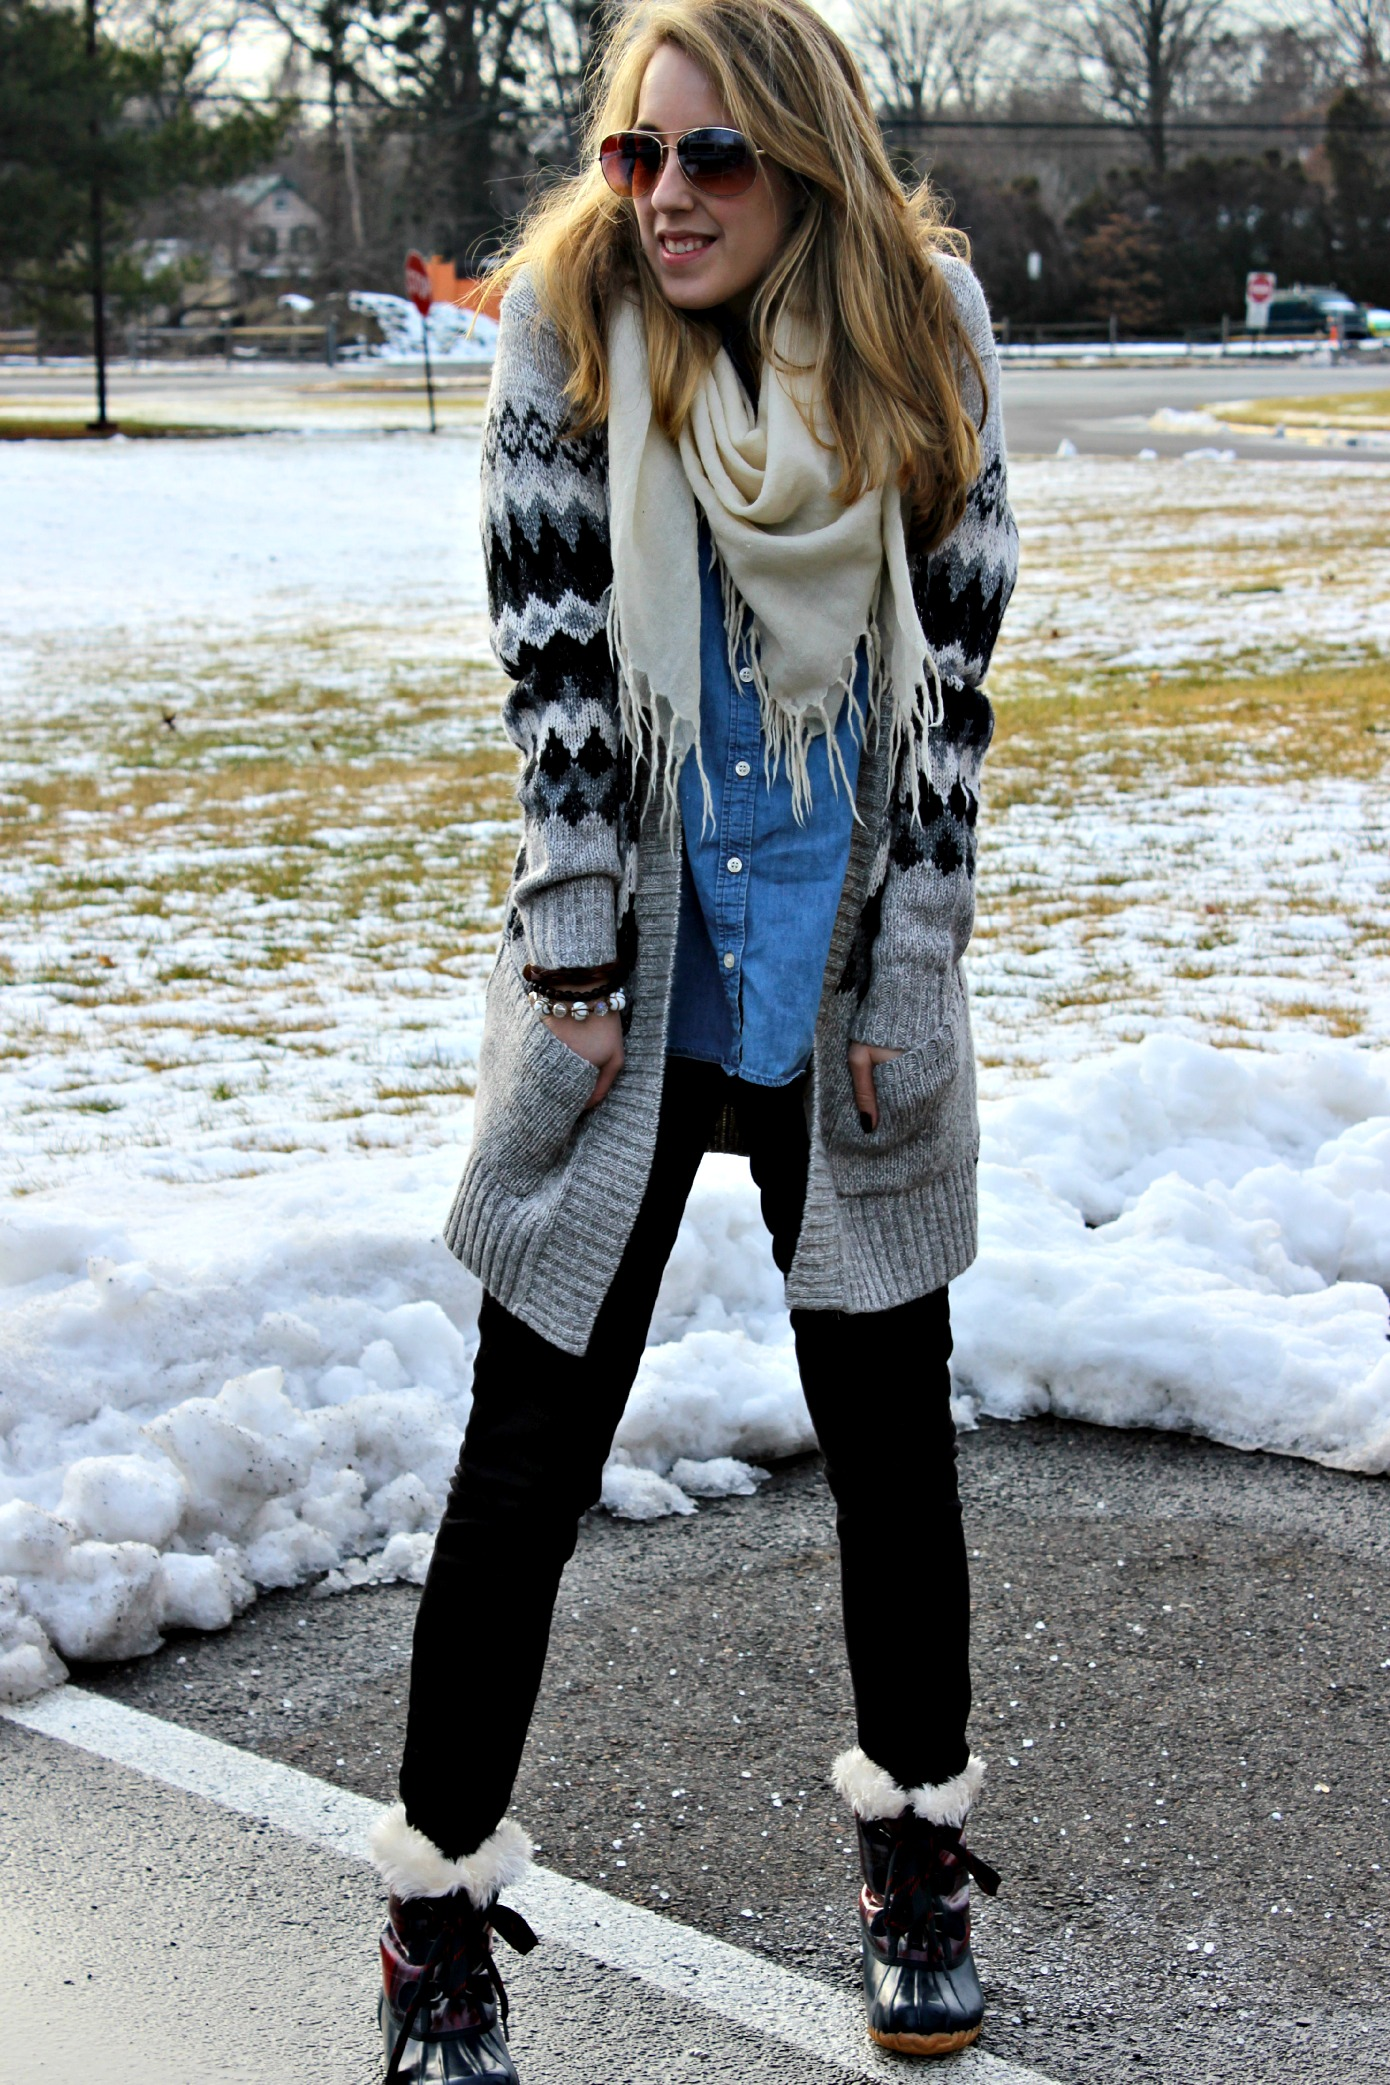 Wearing: Cozy Like A Snow Day Morning